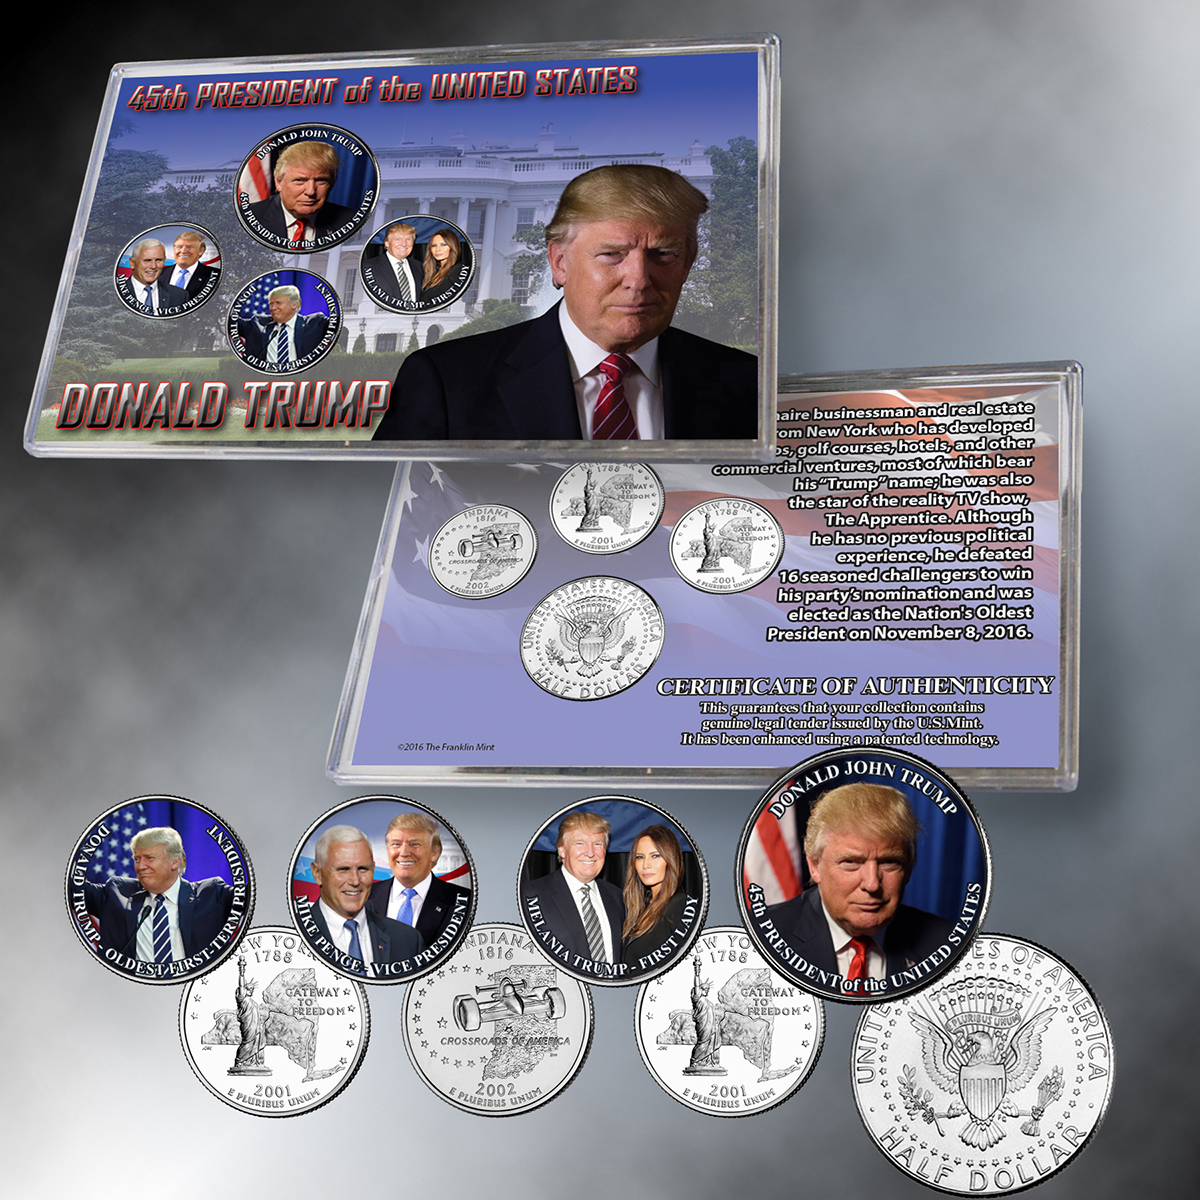 Donald Trump 45th President 4 Coin Set